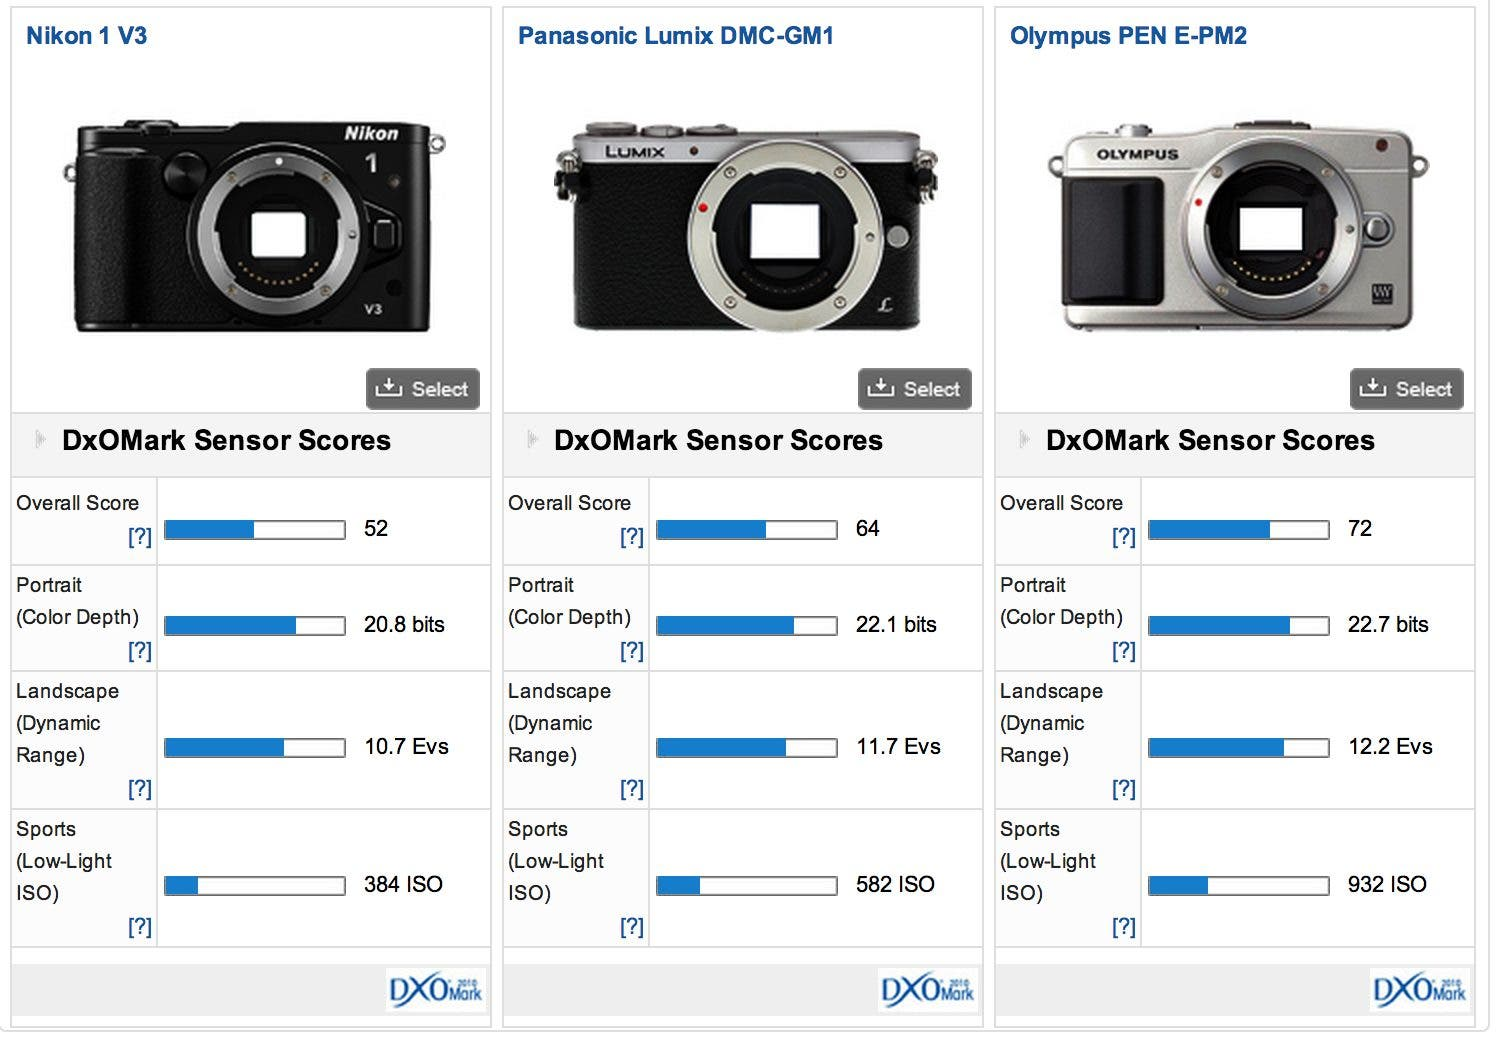 DxOMark Confirms That the New Nikon 1 V3 Can't Outdo Micro Four Thirds Models Despite Price